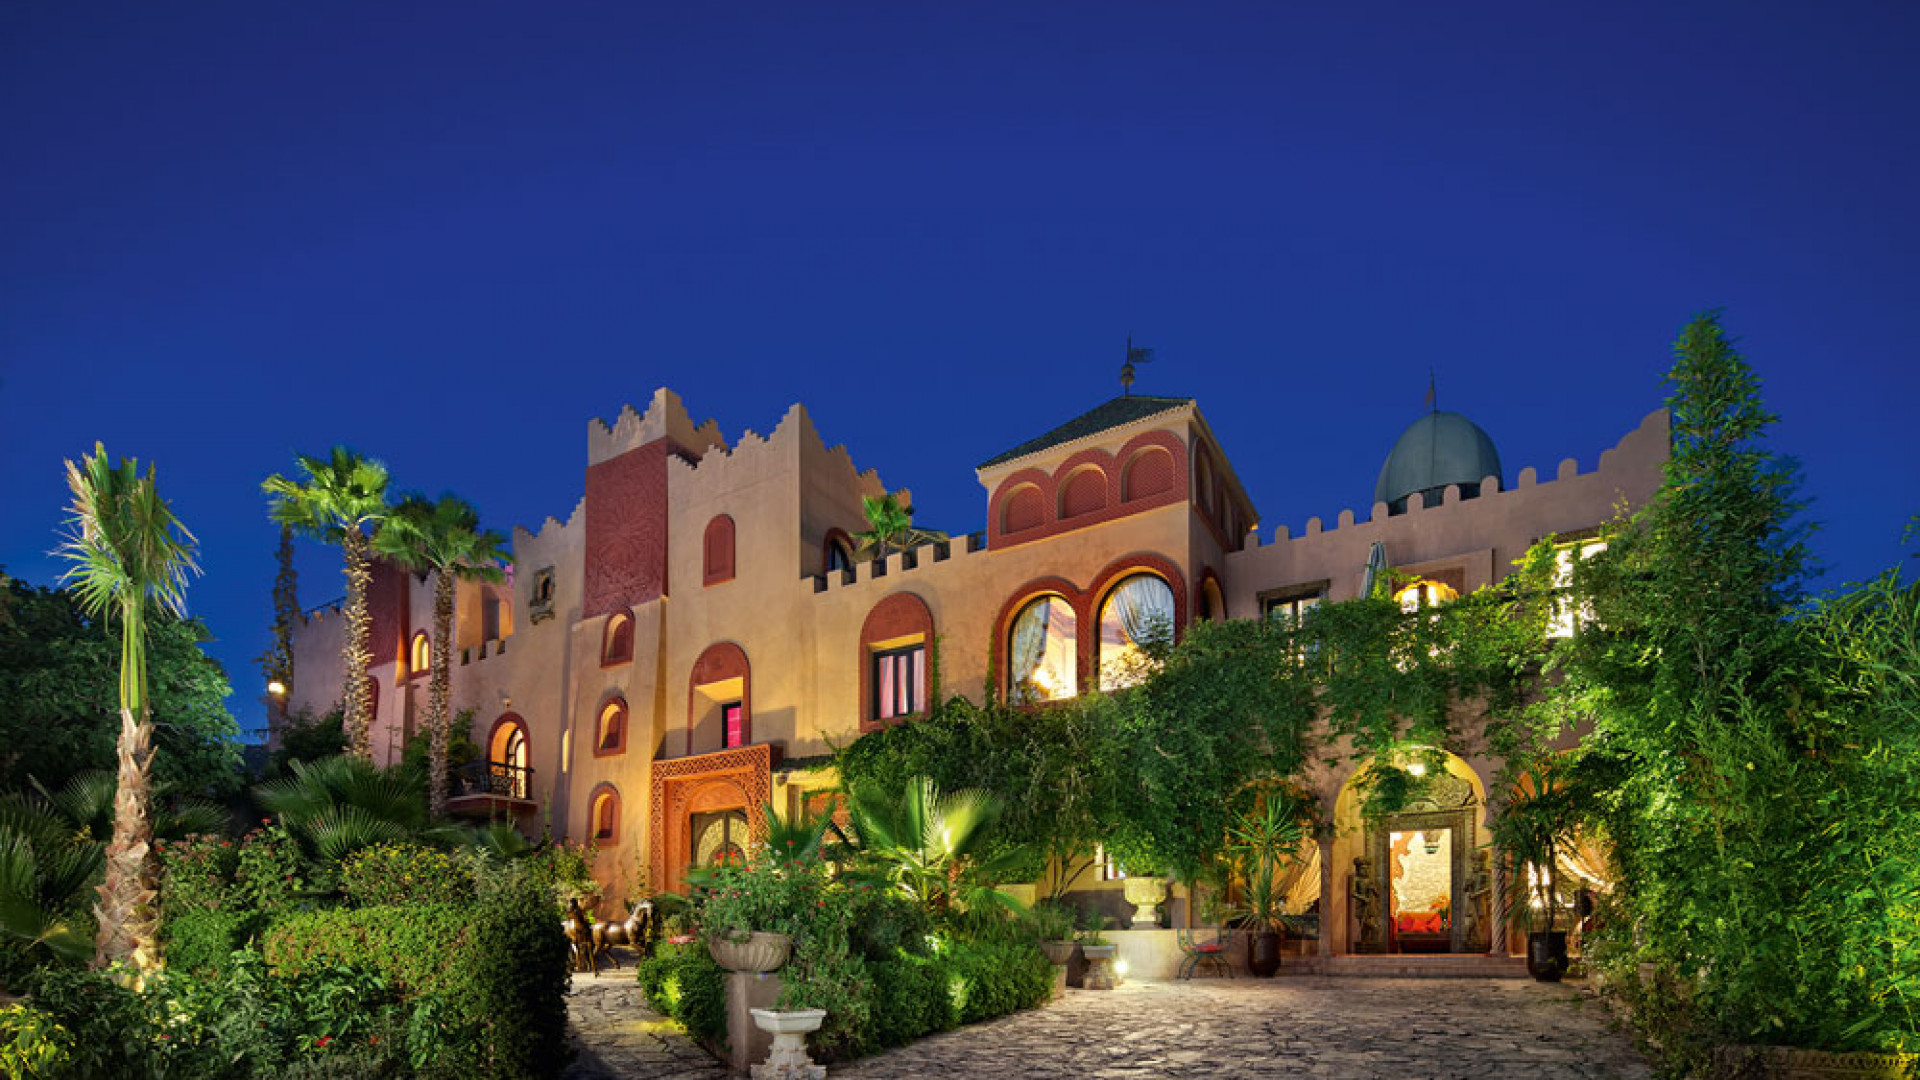 Kasbah Tamadot in the Moroccan Atlas Mountains